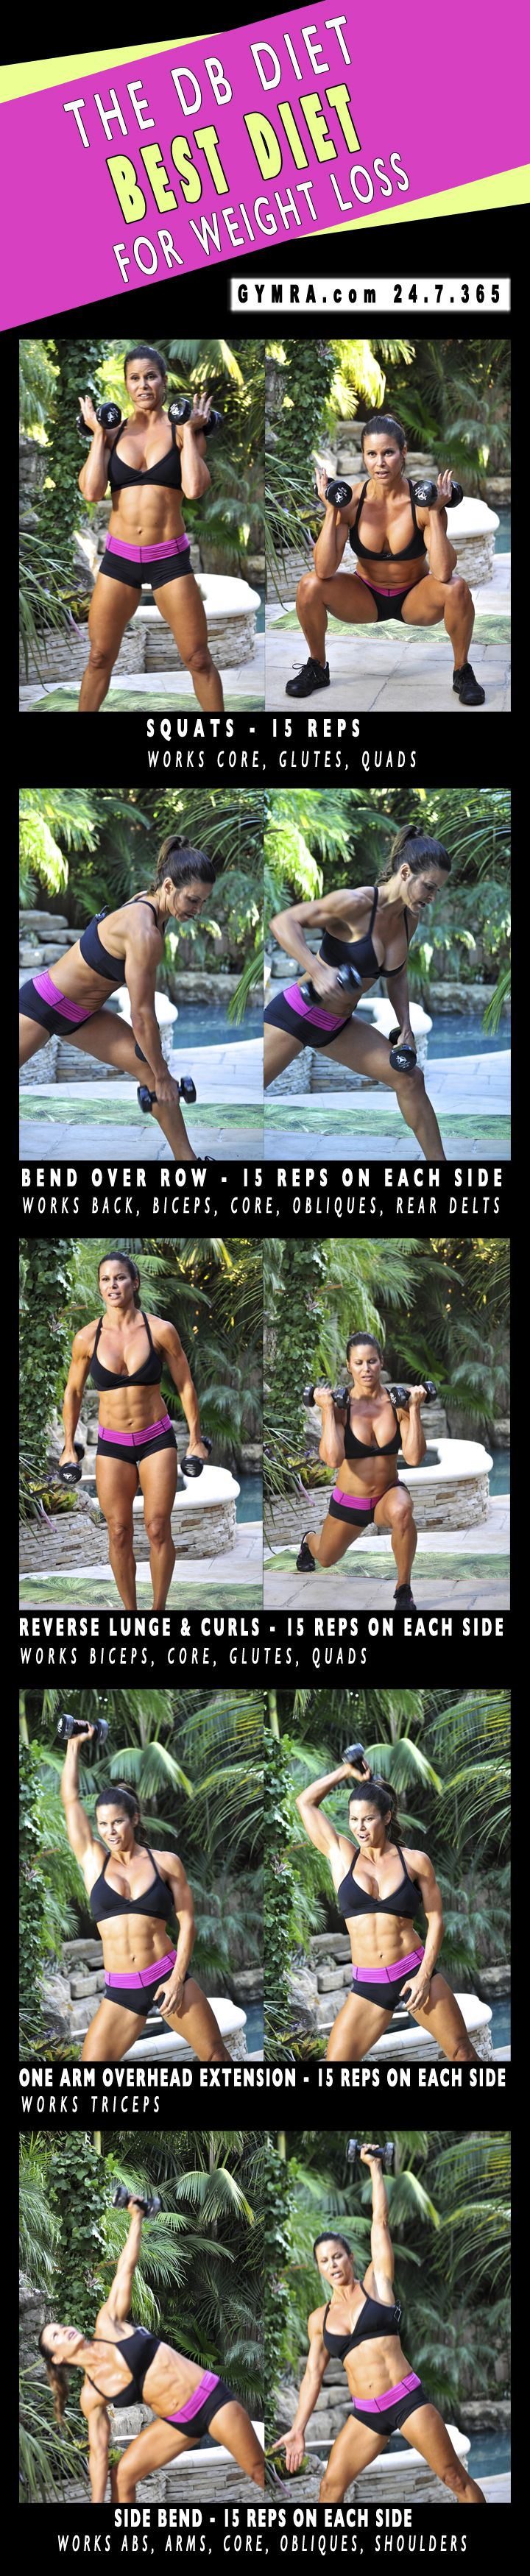 Ejercicios - fitness - Total-Body Workout with dumbbells.